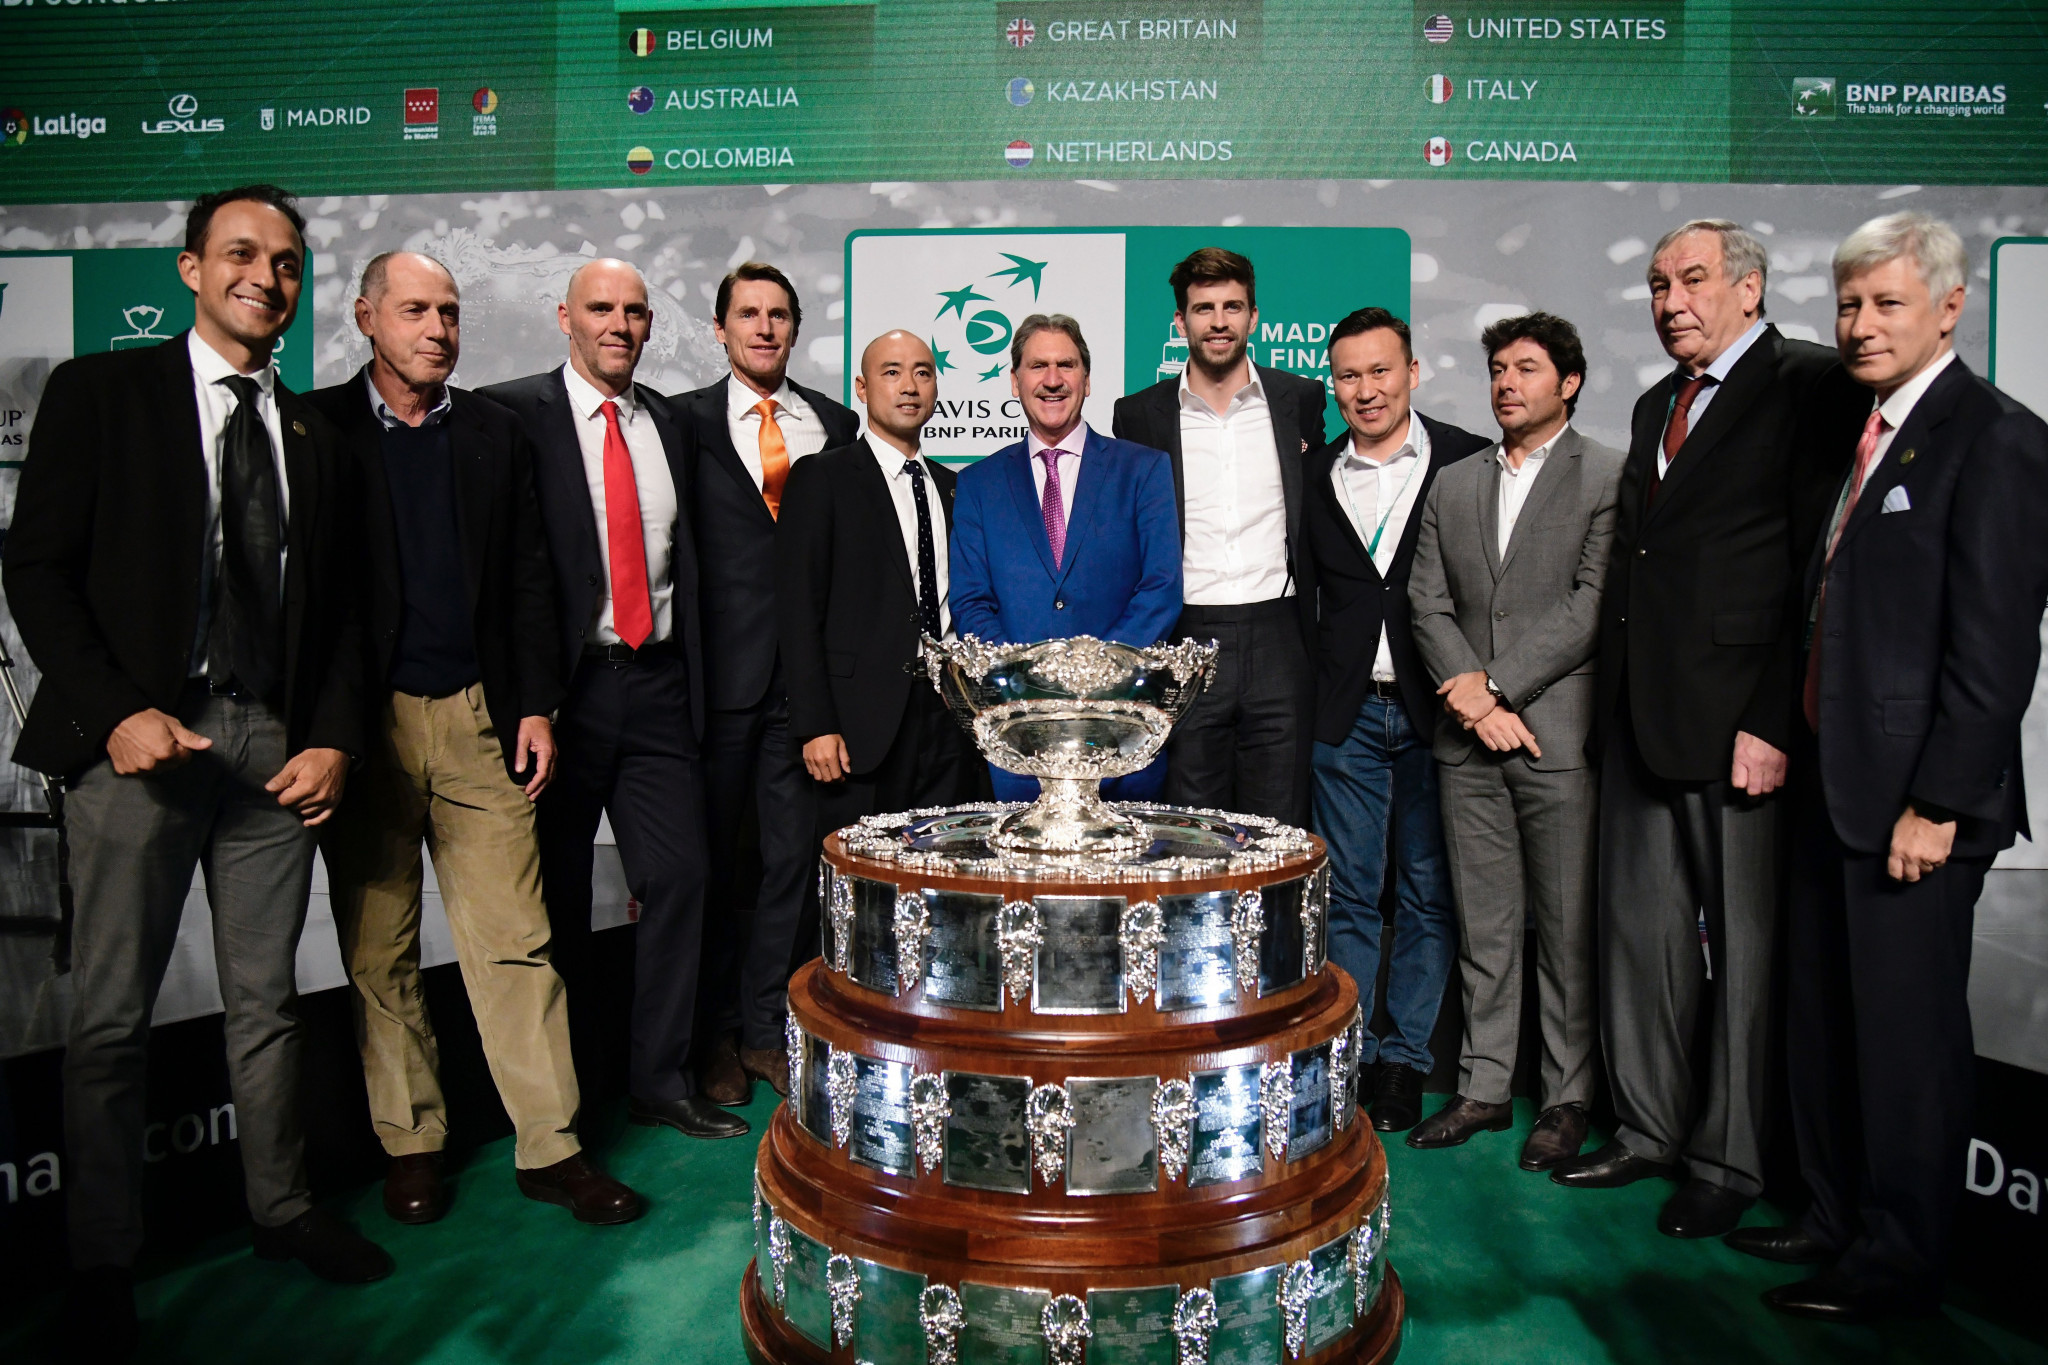 The ATP Cup is set to rival the reformed Davis Cup as the premier international team event in the men's game ©Getty Images